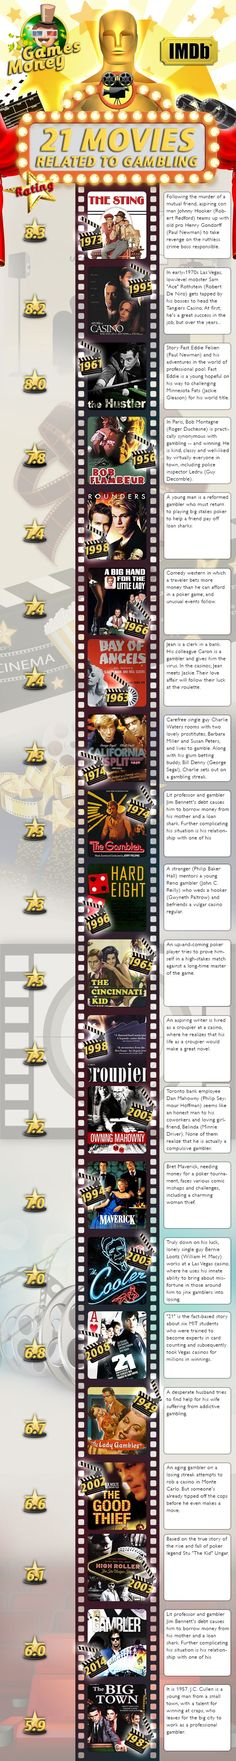 21 Casino Movies Related To Gambling. Check it out here or visit #GamesMoney site.